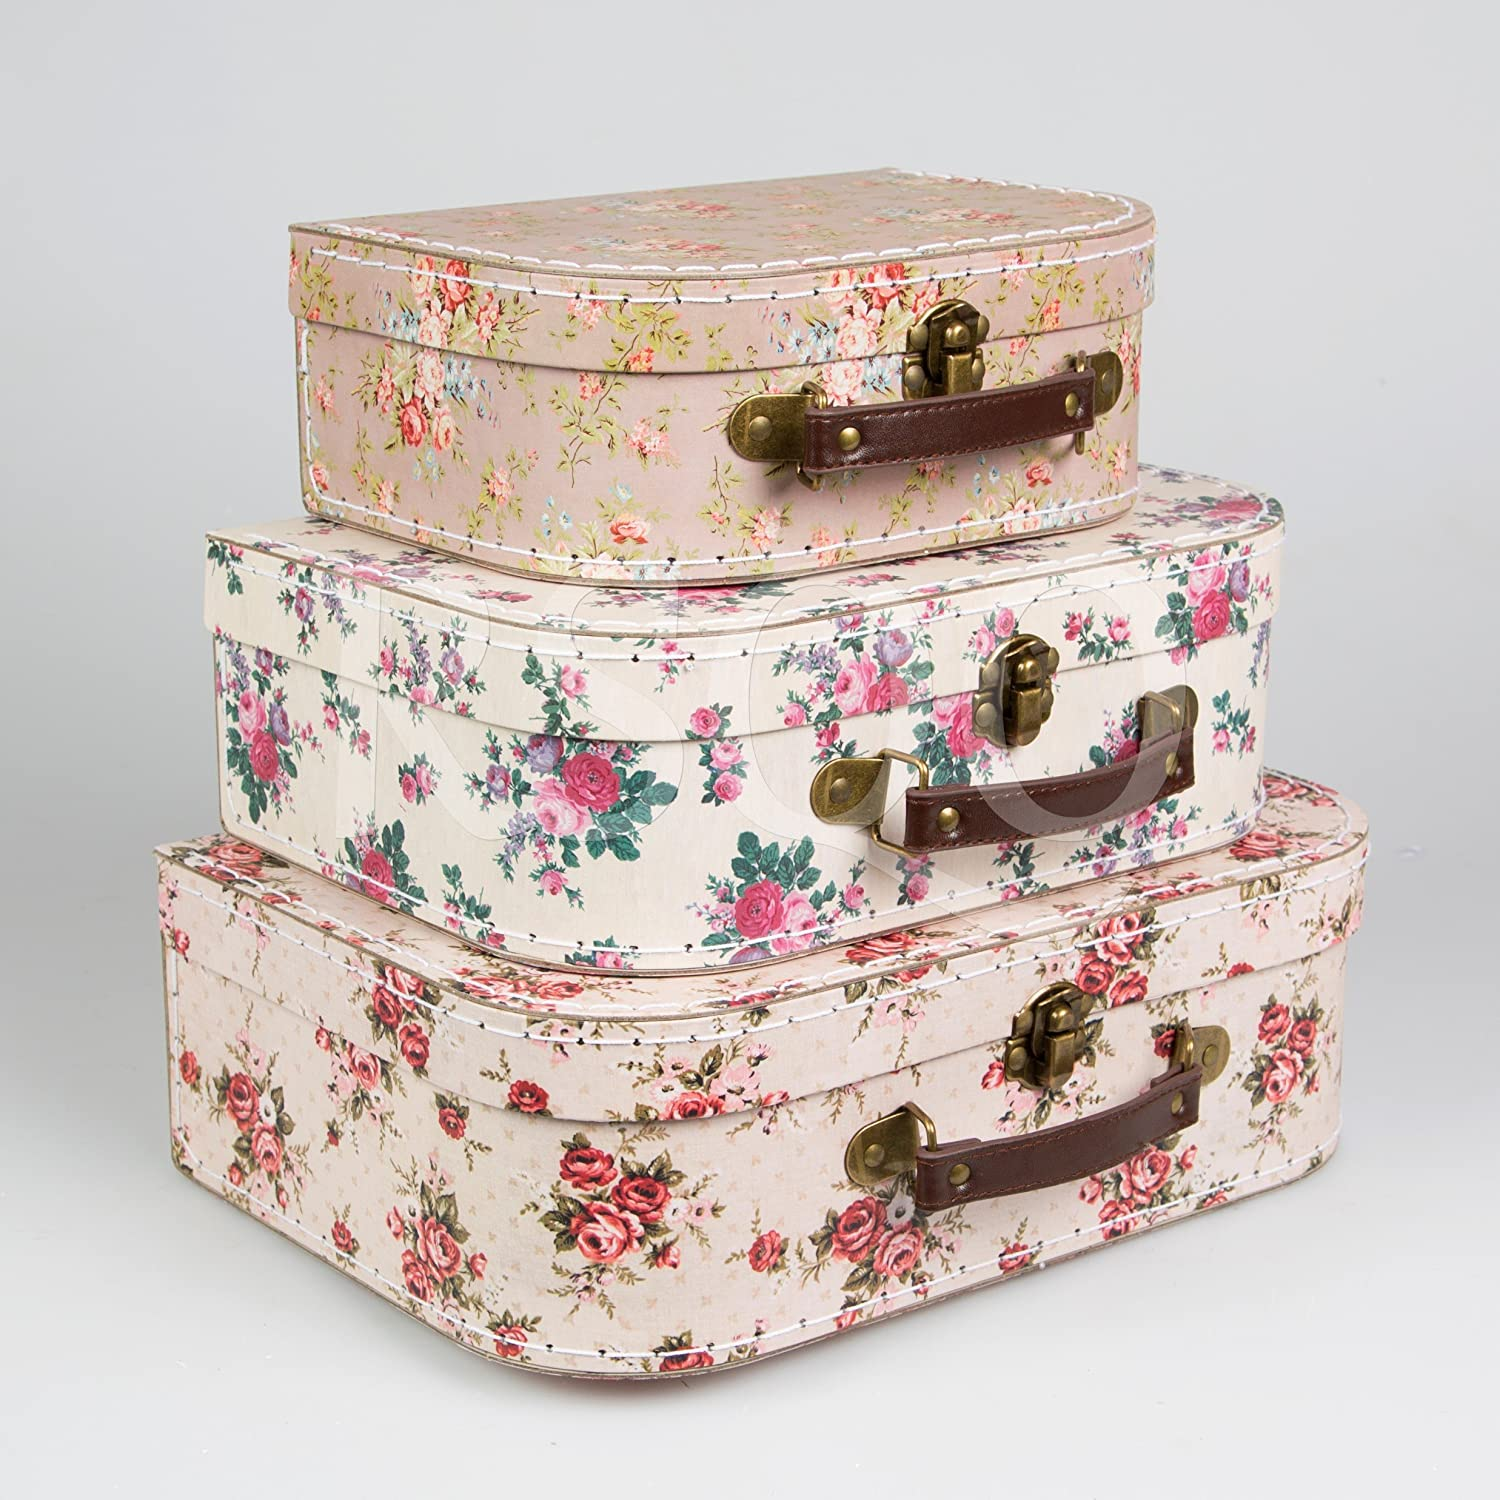 (Pastel Retro) - Set of 3 Suitcase Storage Boxes School Home Decor Sass and Belle Various Designs: Amazon.es: Hogar